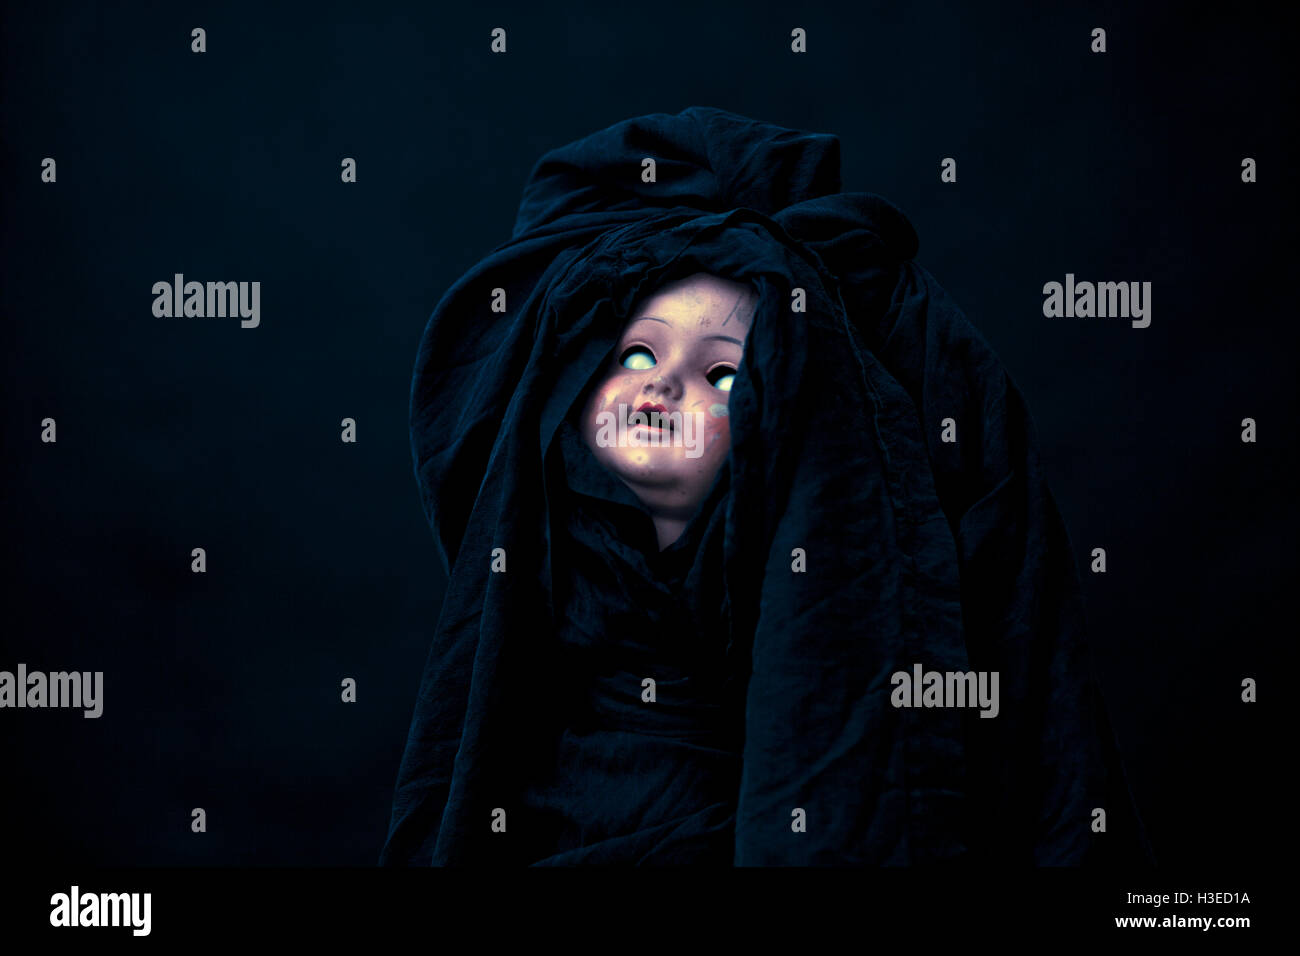 Creepy doll Photo Stock